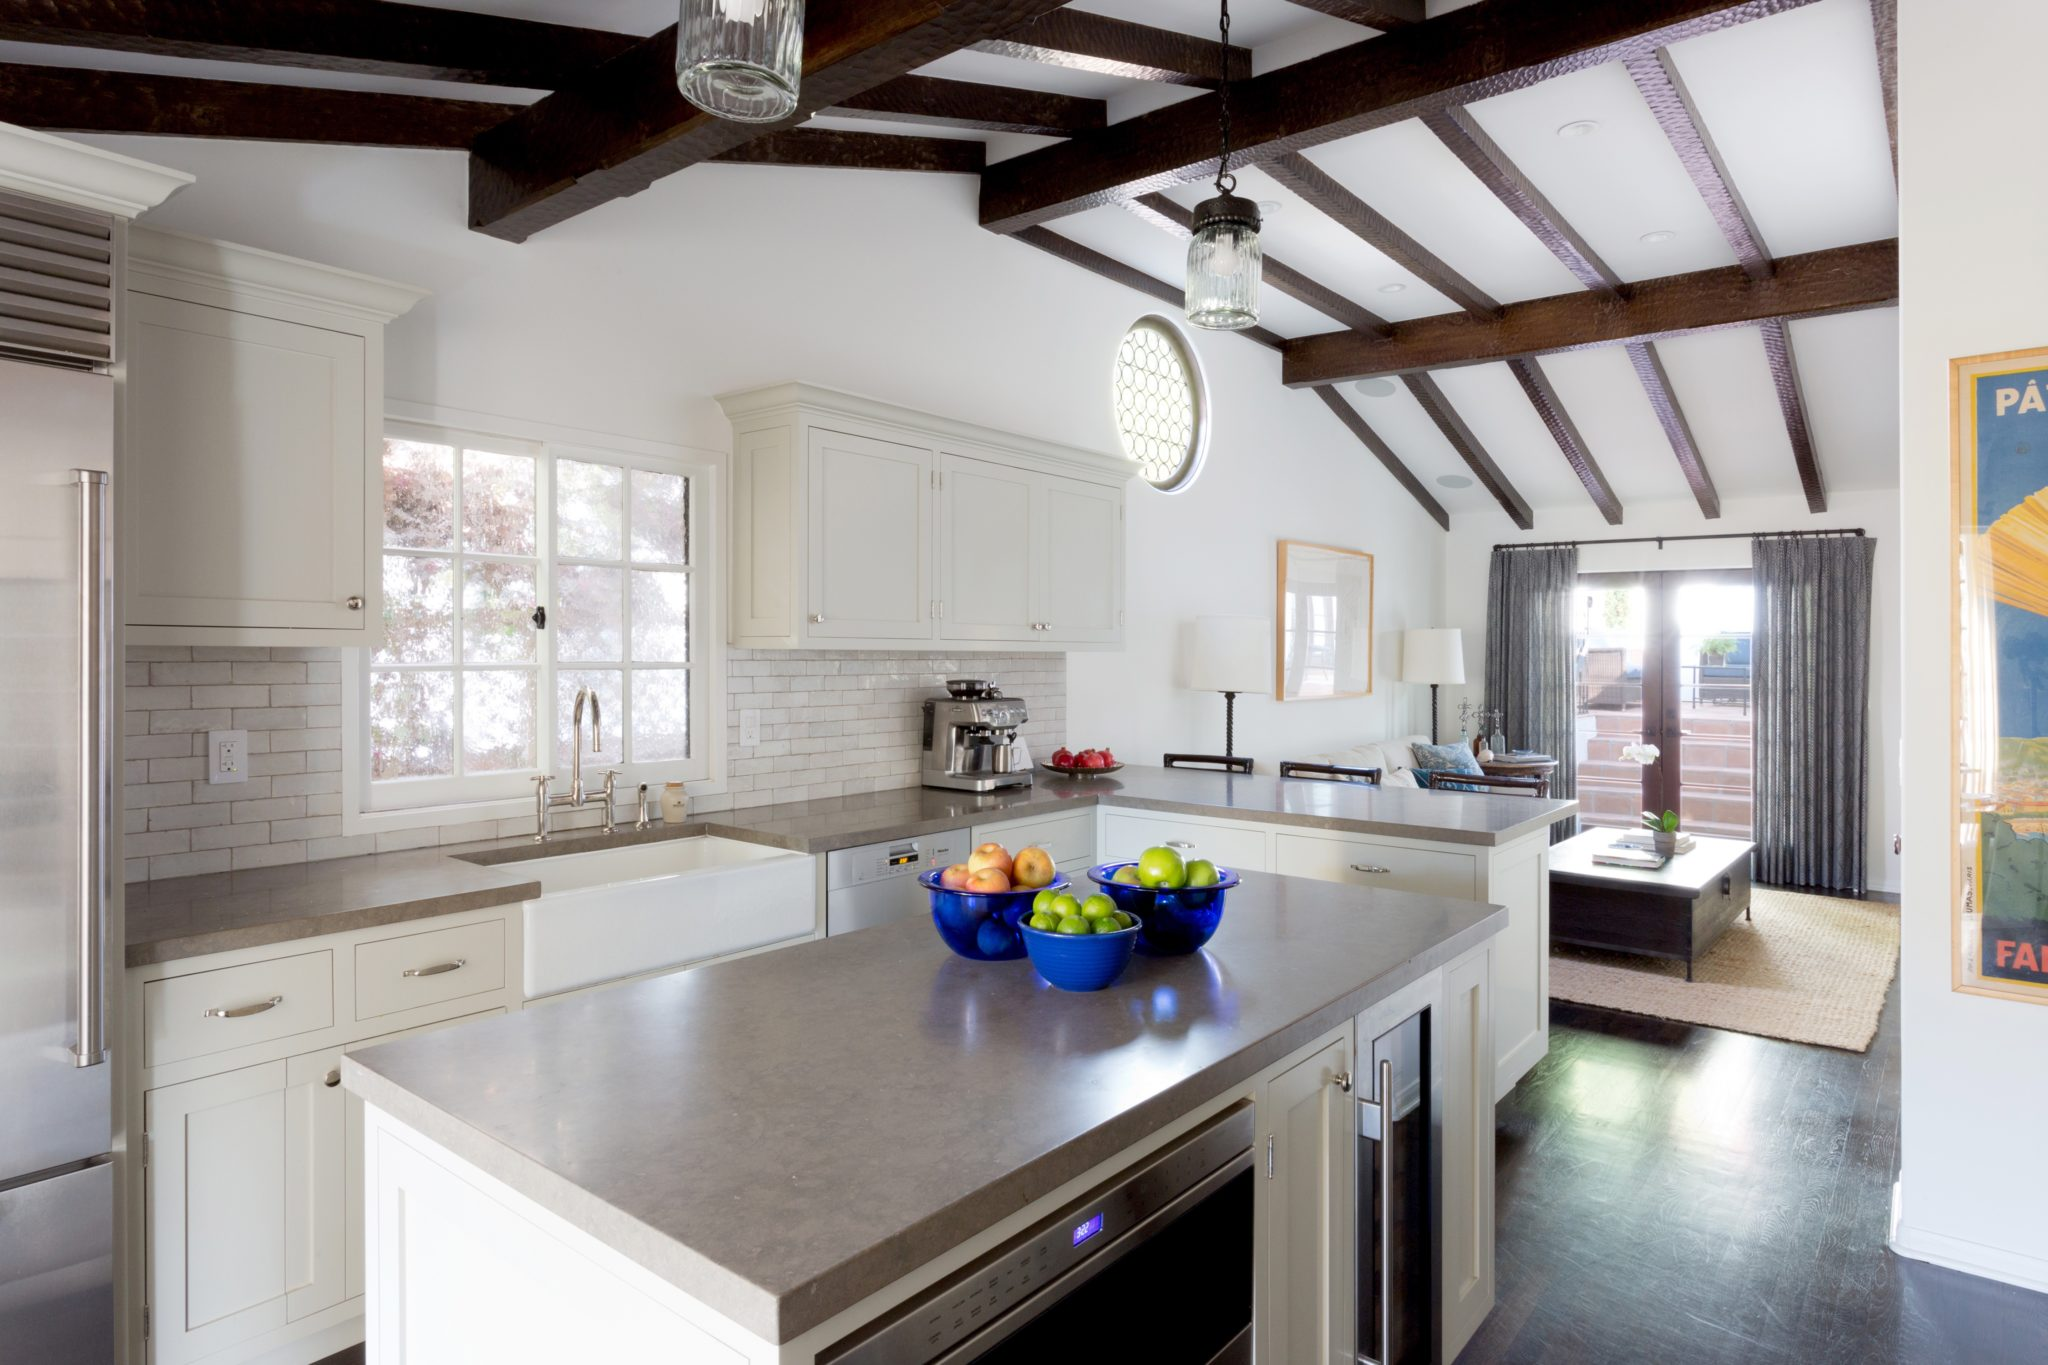 Kitchen with Isalnd and Beam Ceiling by Paul Brant Williger, Architect Inc.